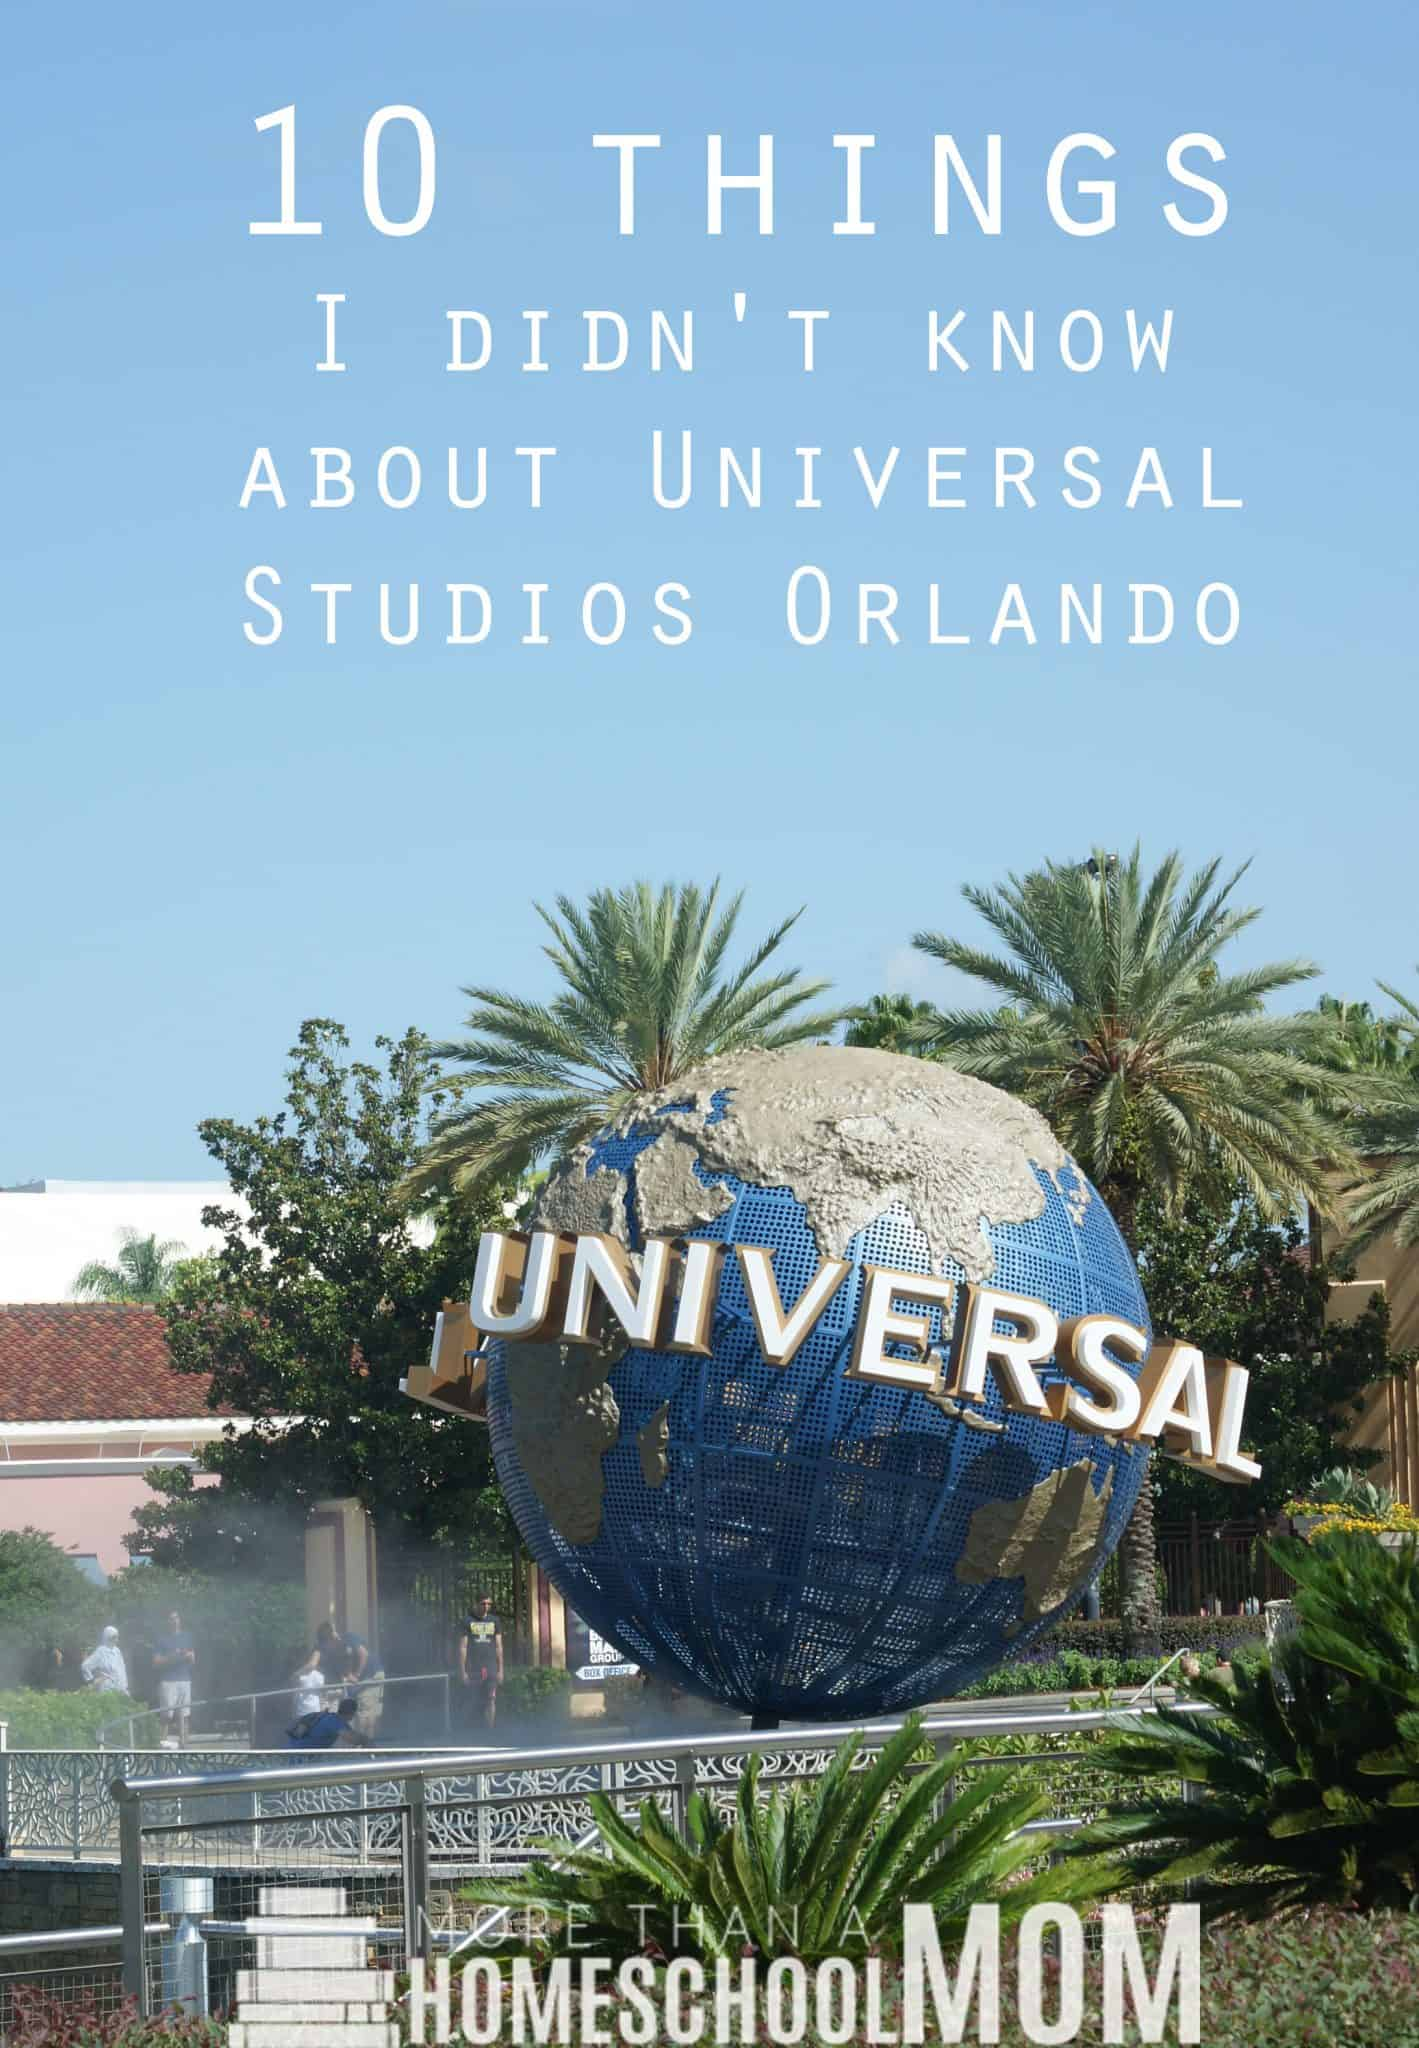 10 Things I didn't know about Universal Studios Orlando - Tips for visiting Universal Studios Orlando and enjoying Diagon Alley - #HarryPotter #UniversalStudios #DiagonAlley #Travel #Florida #orlando #Universal